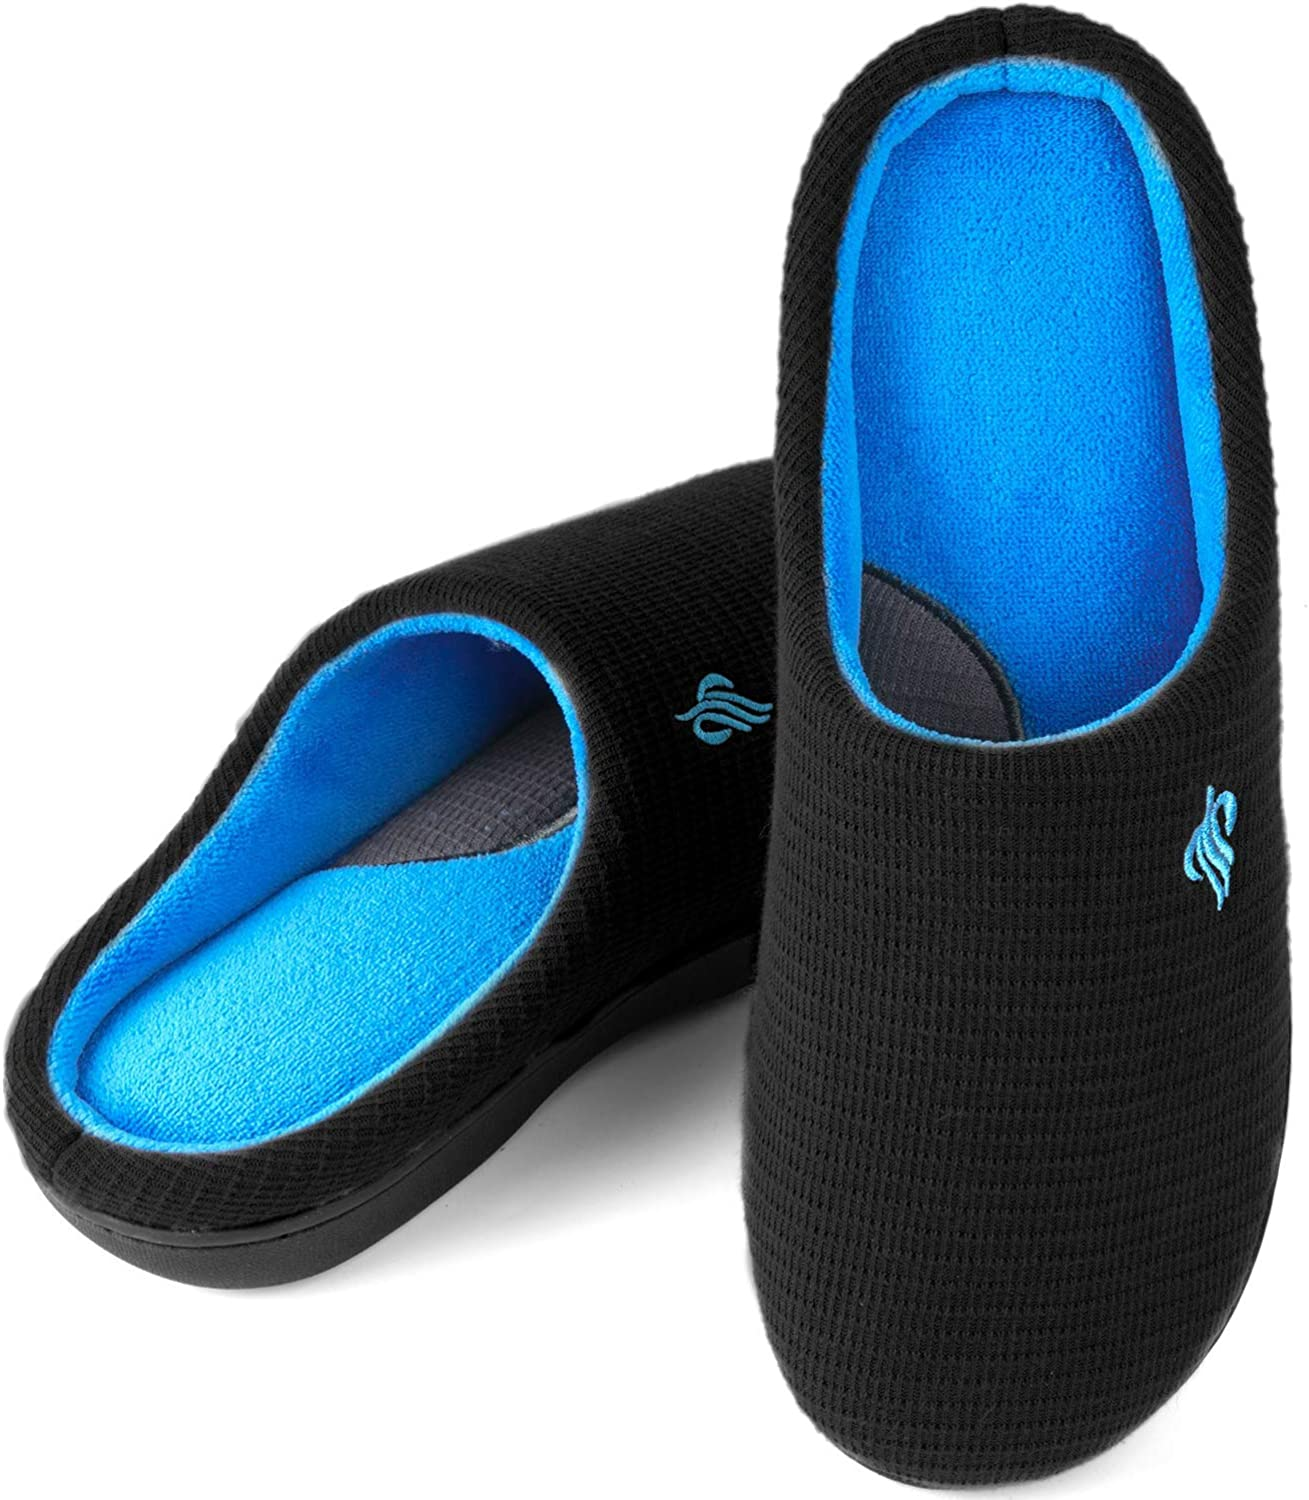 Wishcotton Mens Classic Two-Tone Slippers, Comfy Memory Foam House Shoes